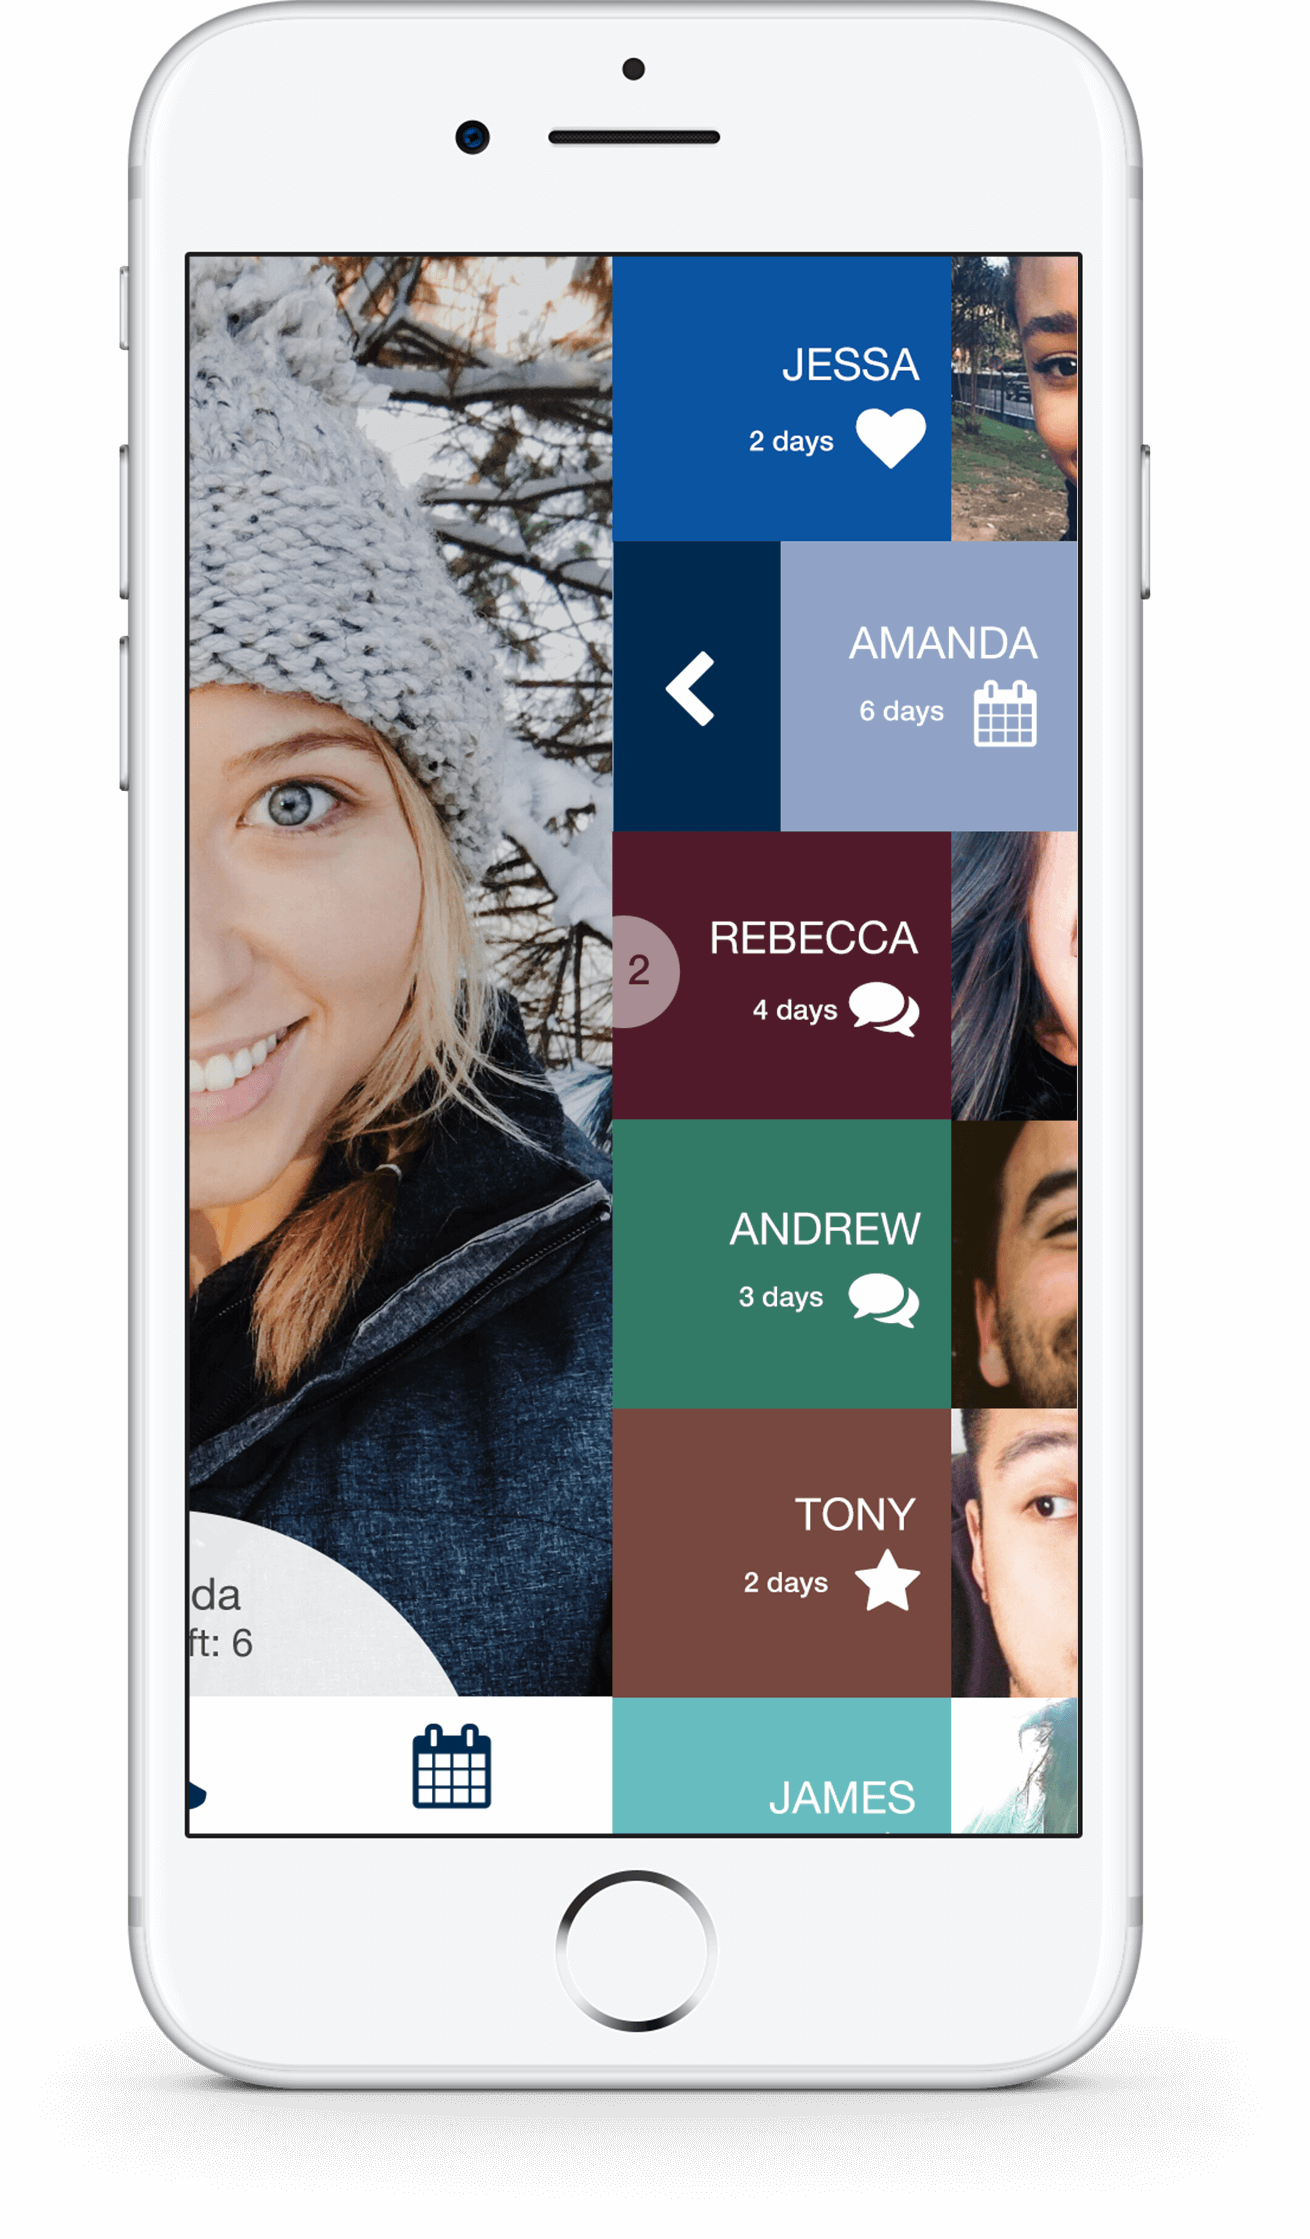 iPhone 7 displays colorful and lively menu of mobile dating application